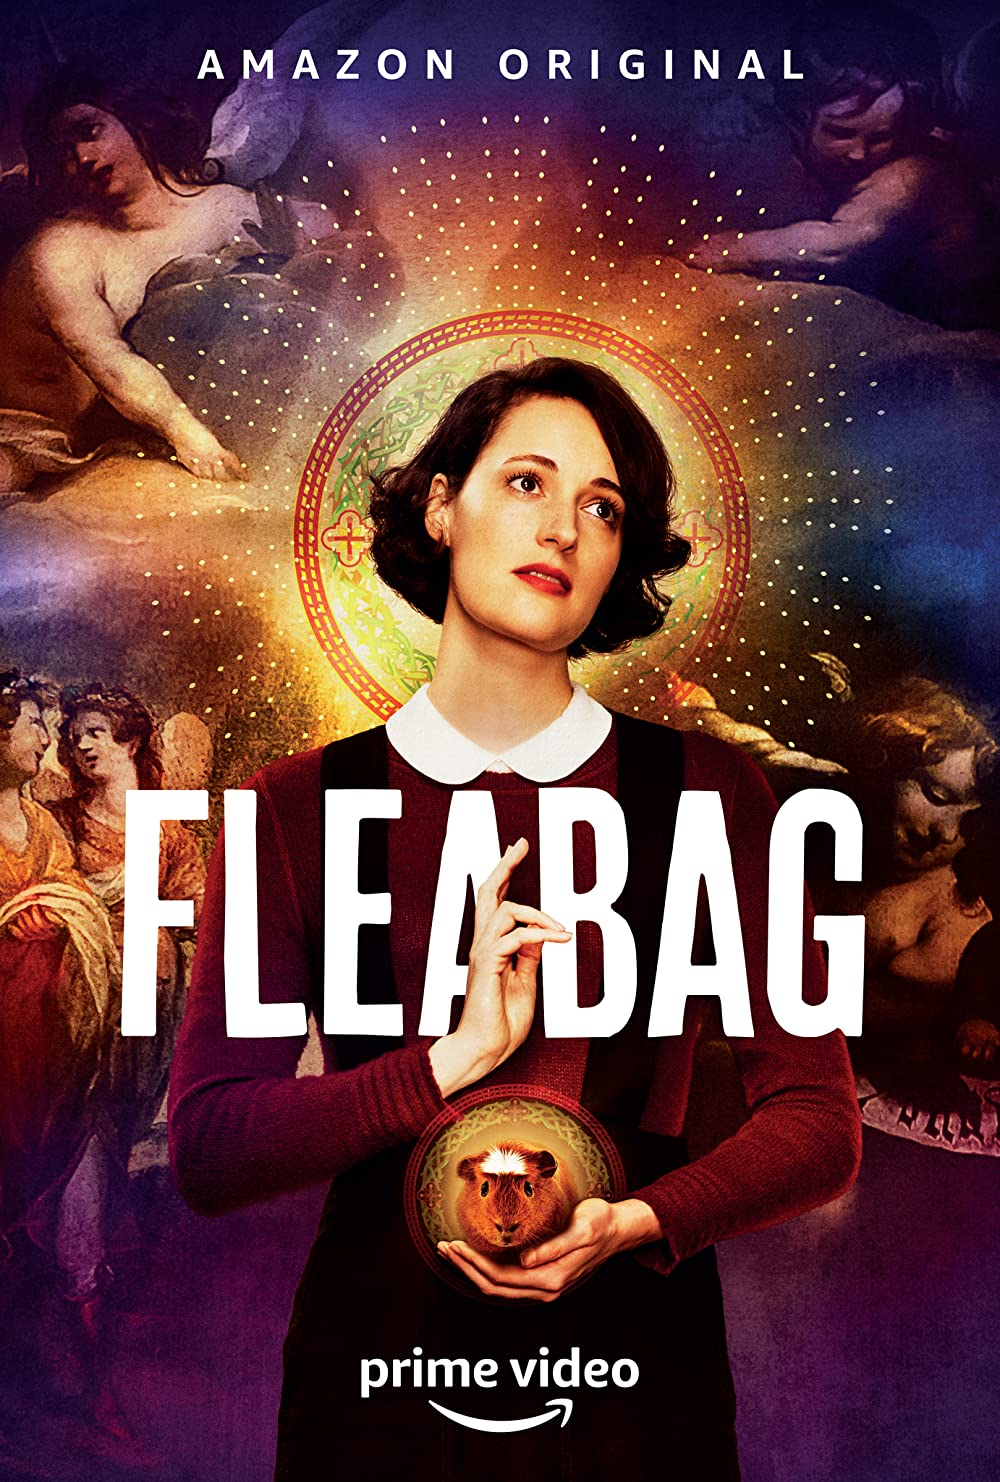 Fleabag: Created by Phoebe Waller-Bridge. With Phoebe Waller-Bridge, Sian Clifford, Olivia Colman, Jenny Rainsford. A comedy series adapted from the award-winning play about a young woman trying to cope with life in London whilst coming to terms with...